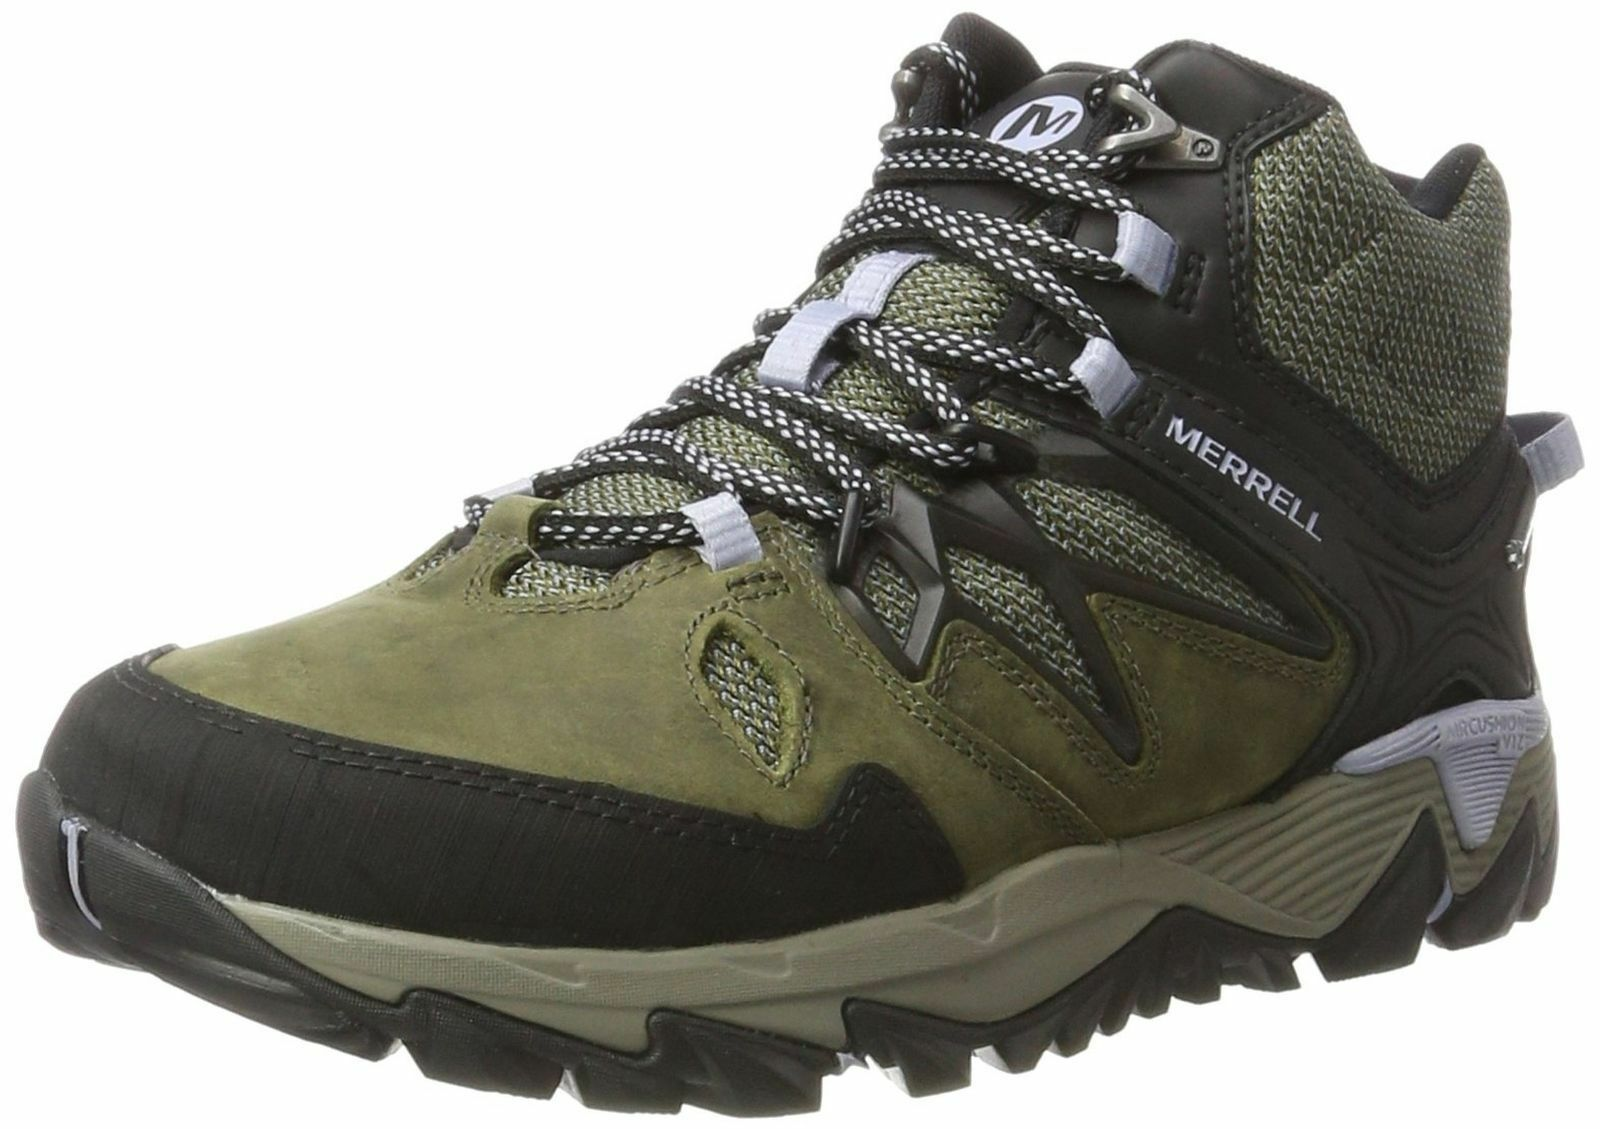 Ladies Dark Olive Lace Up Merrell Walking boots All Out Blaze 2 Mid gtx